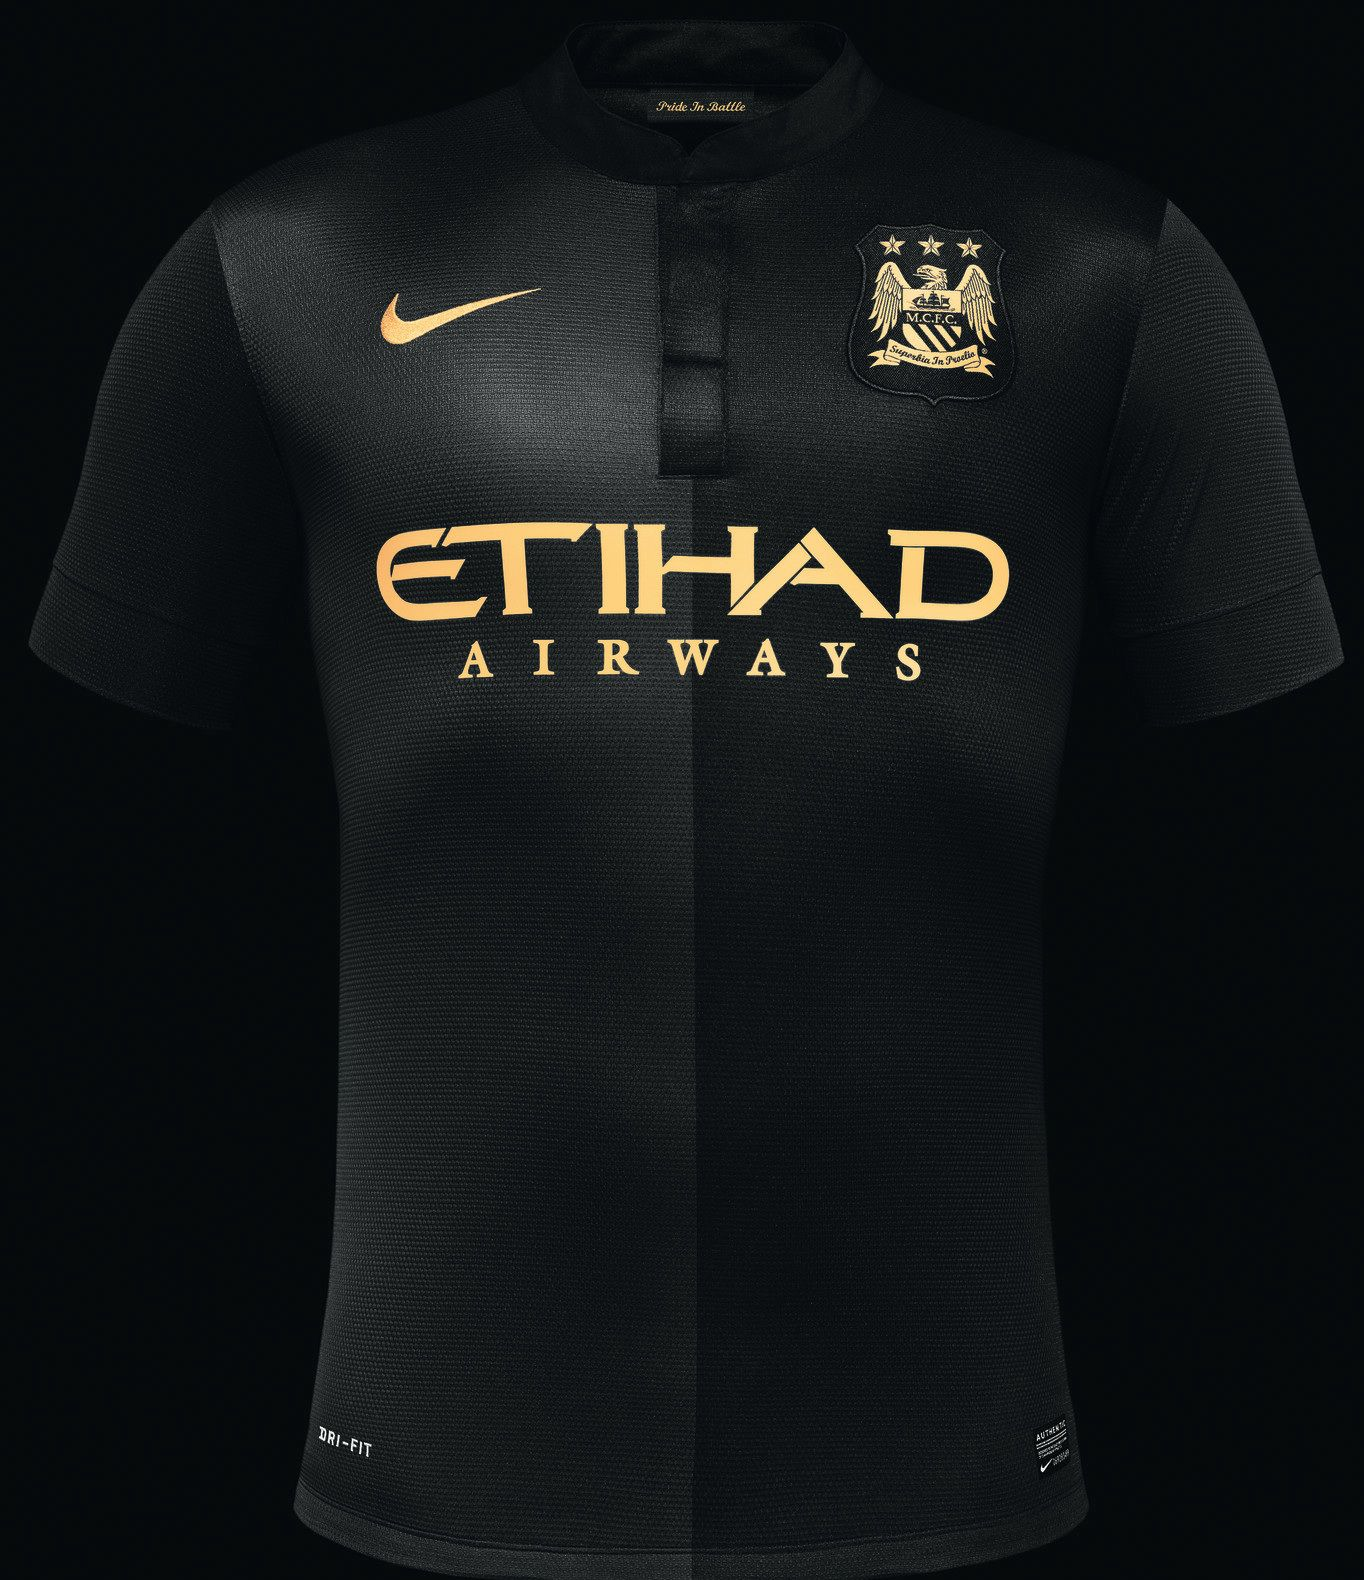 Nike Manchester City 2013-2014 Home and Away Kits released dfc894429